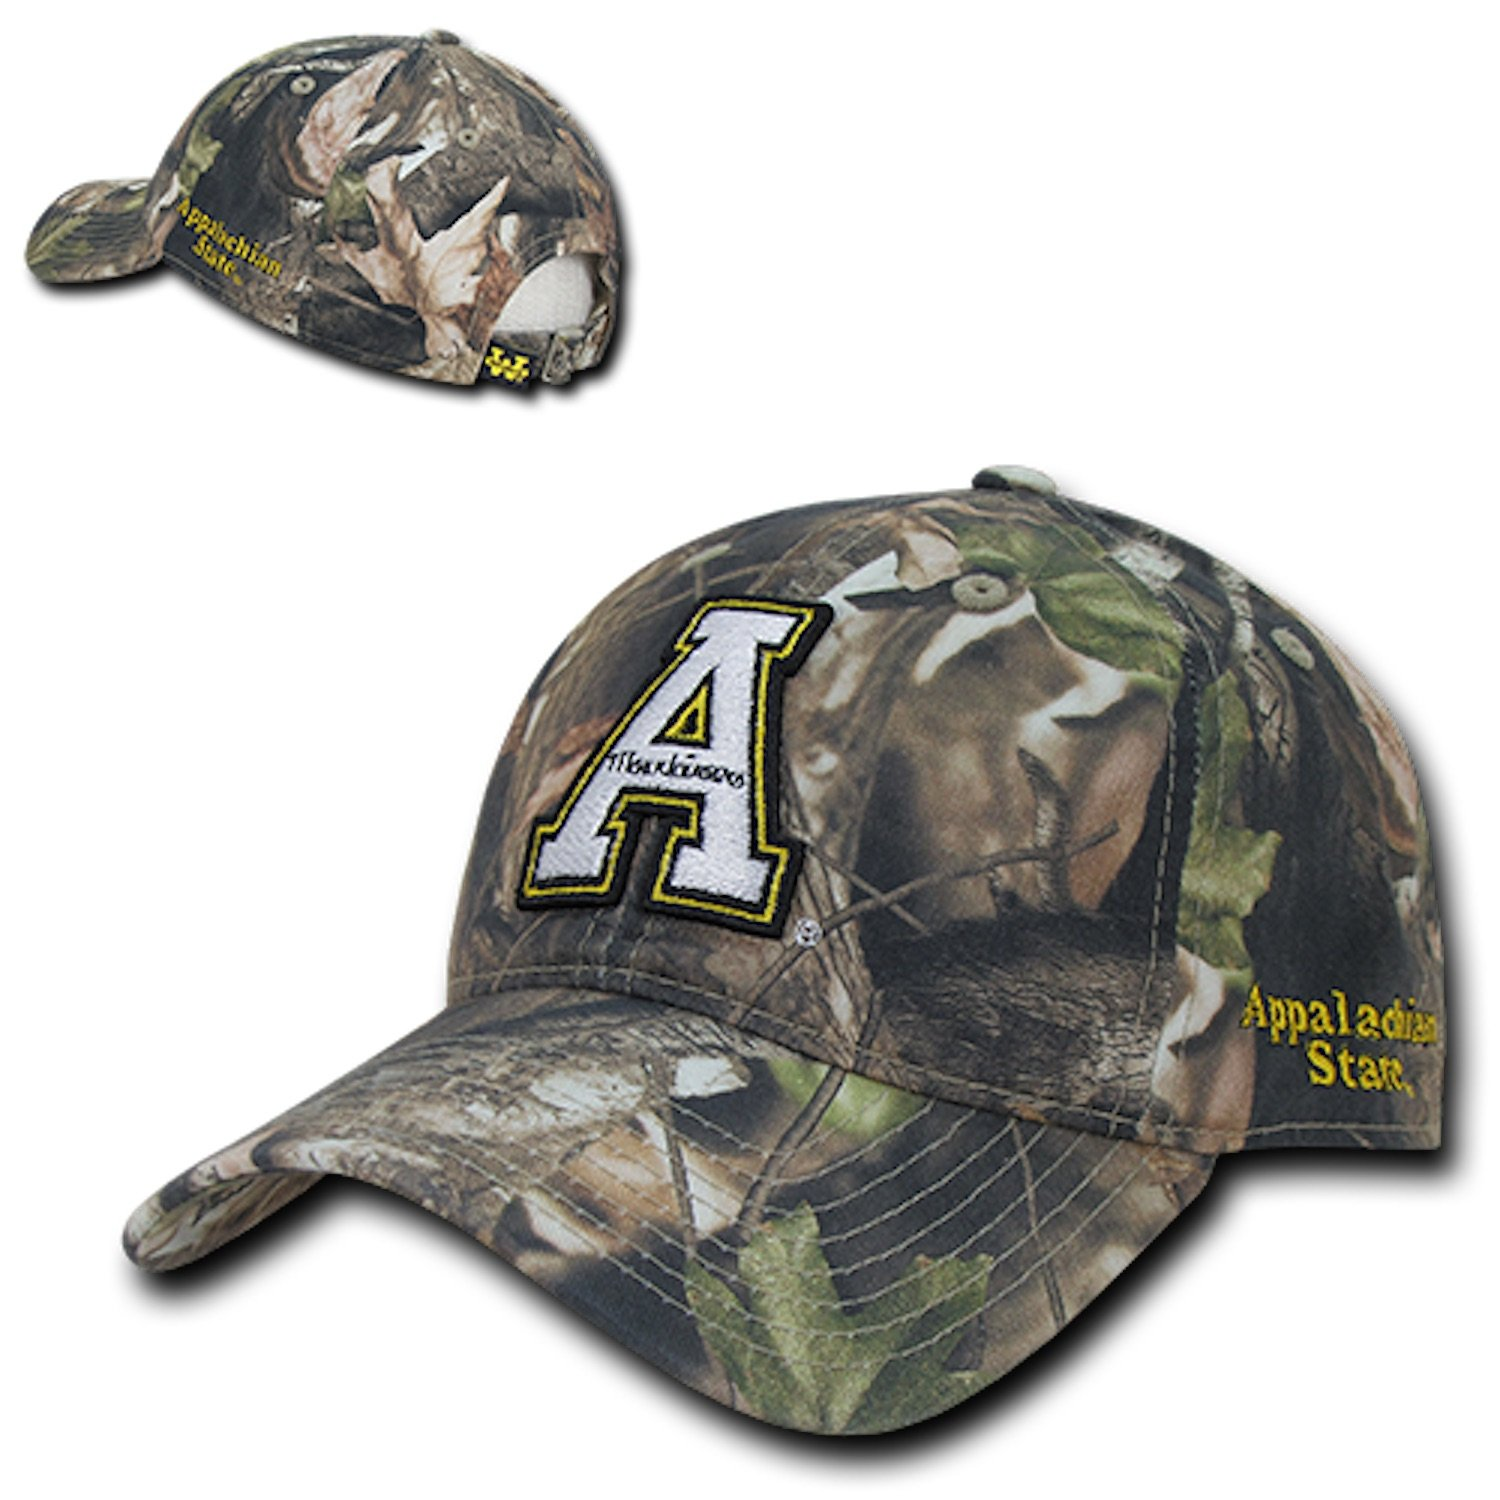 6fe9e2f09f70b Amazon.com  ASU Appalachian App State University Mountaineers Cotton  Hybricam Camo Camouflage Polo Style Baseball Ball Cap Hat  Clothing